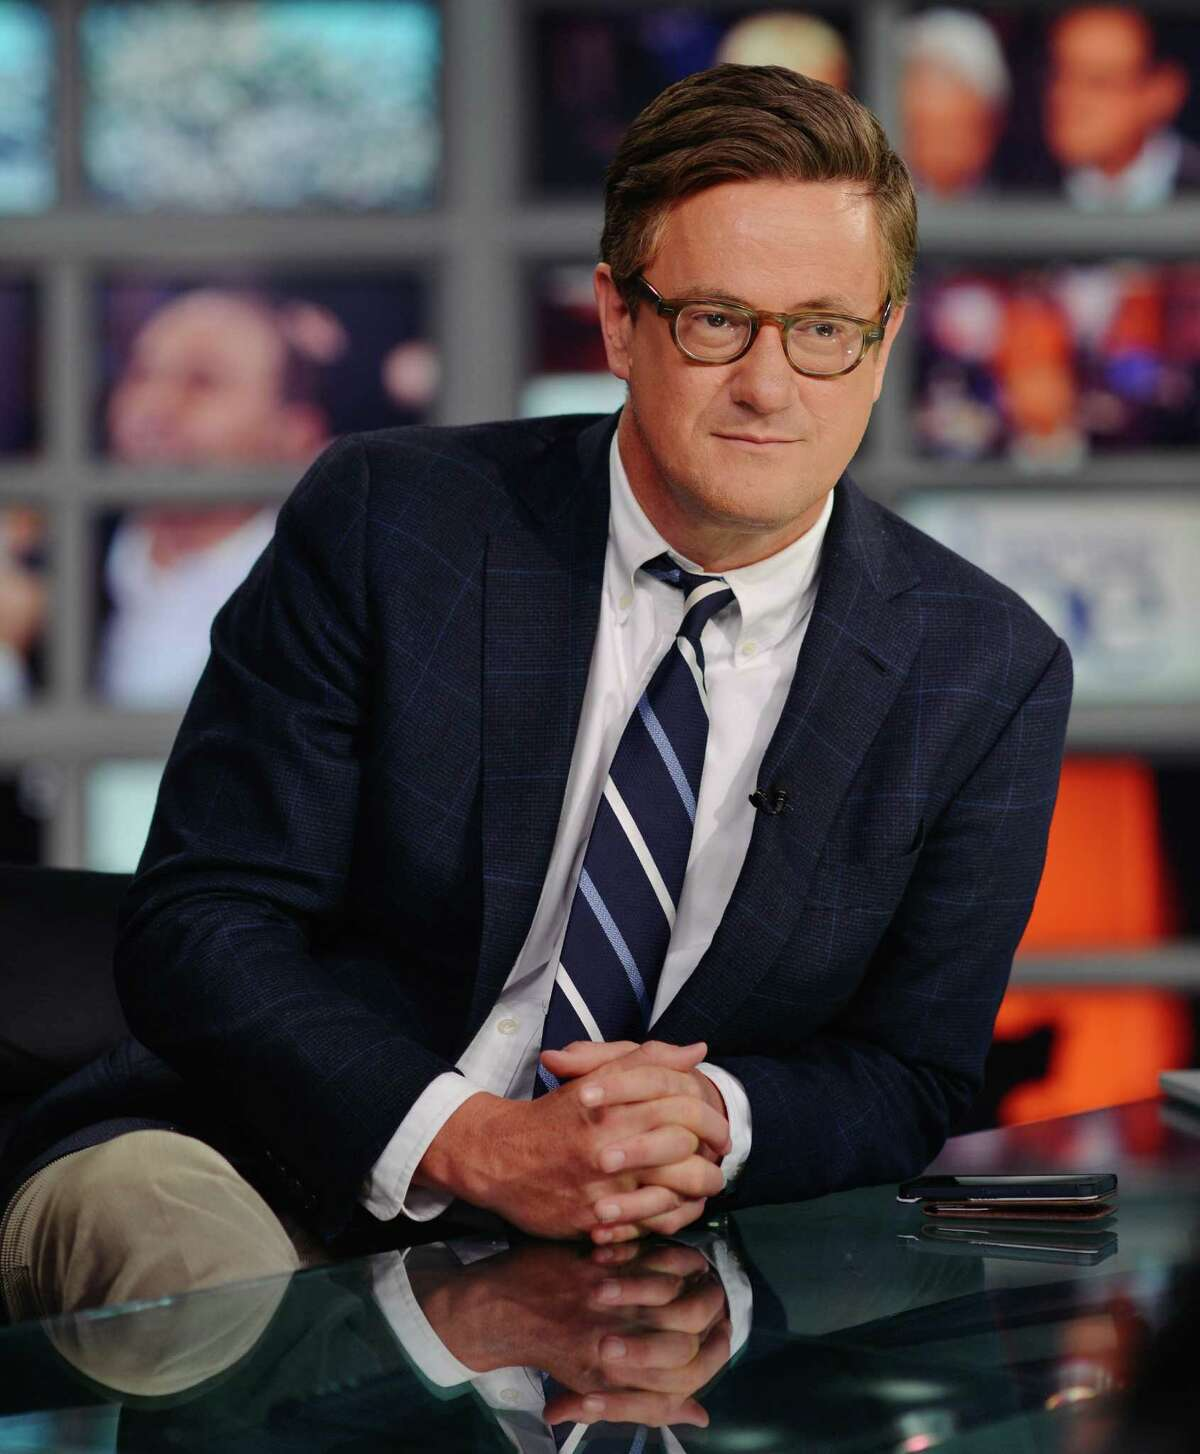 """Some Democrats have complained that Joe Scarborough, host of MSNBC's """"Morning Joe,"""" has been using his show to further his political ambitions."""